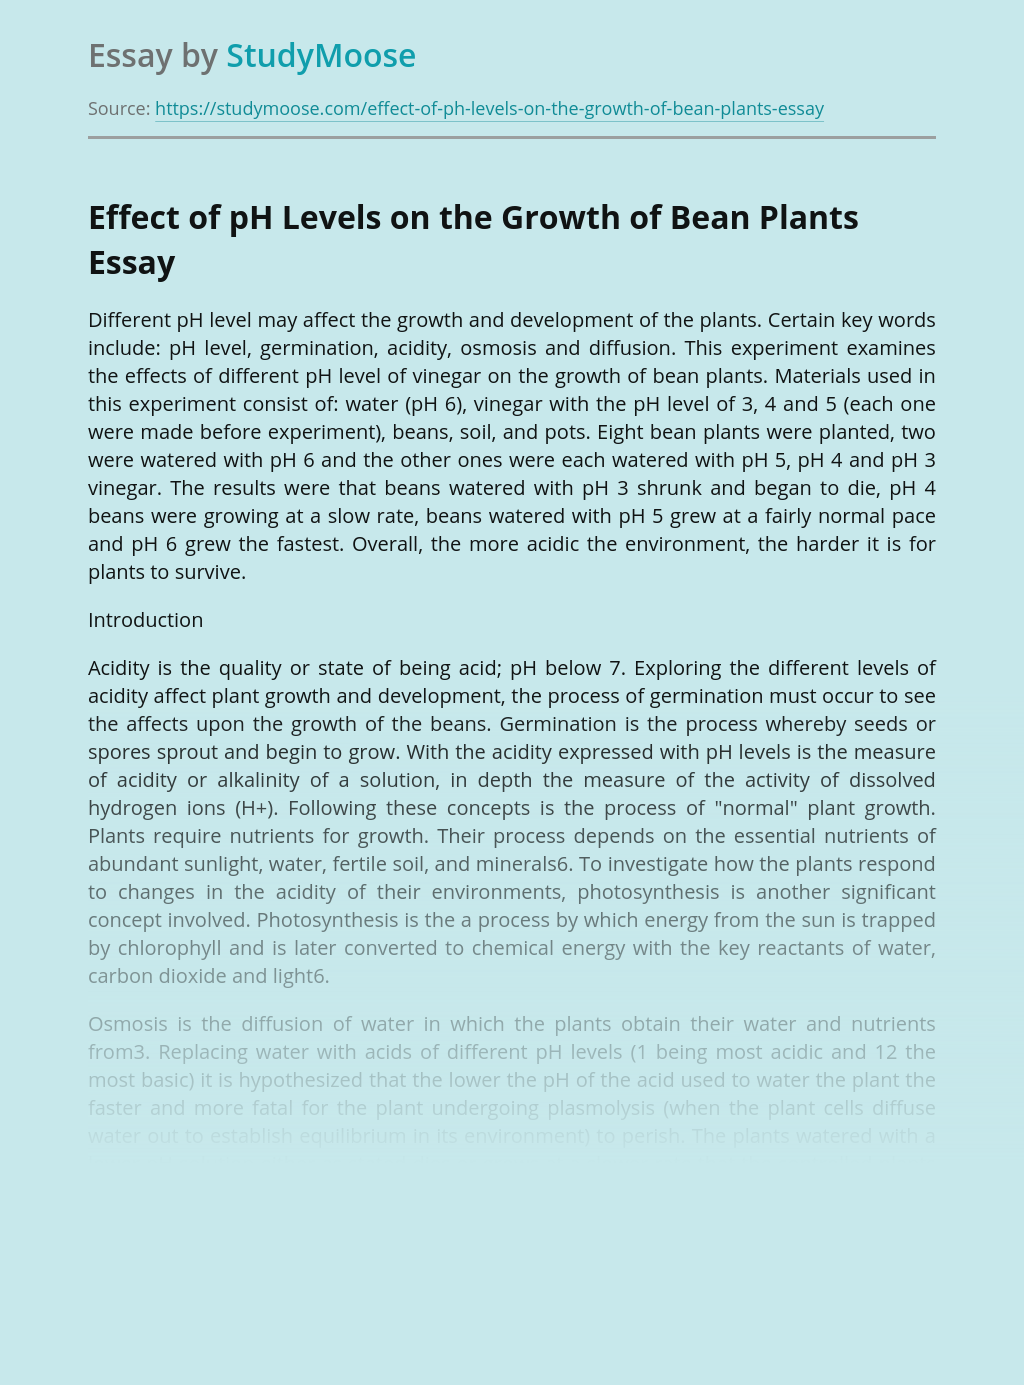 Effect of pH Levels on the Growth of Bean Plants